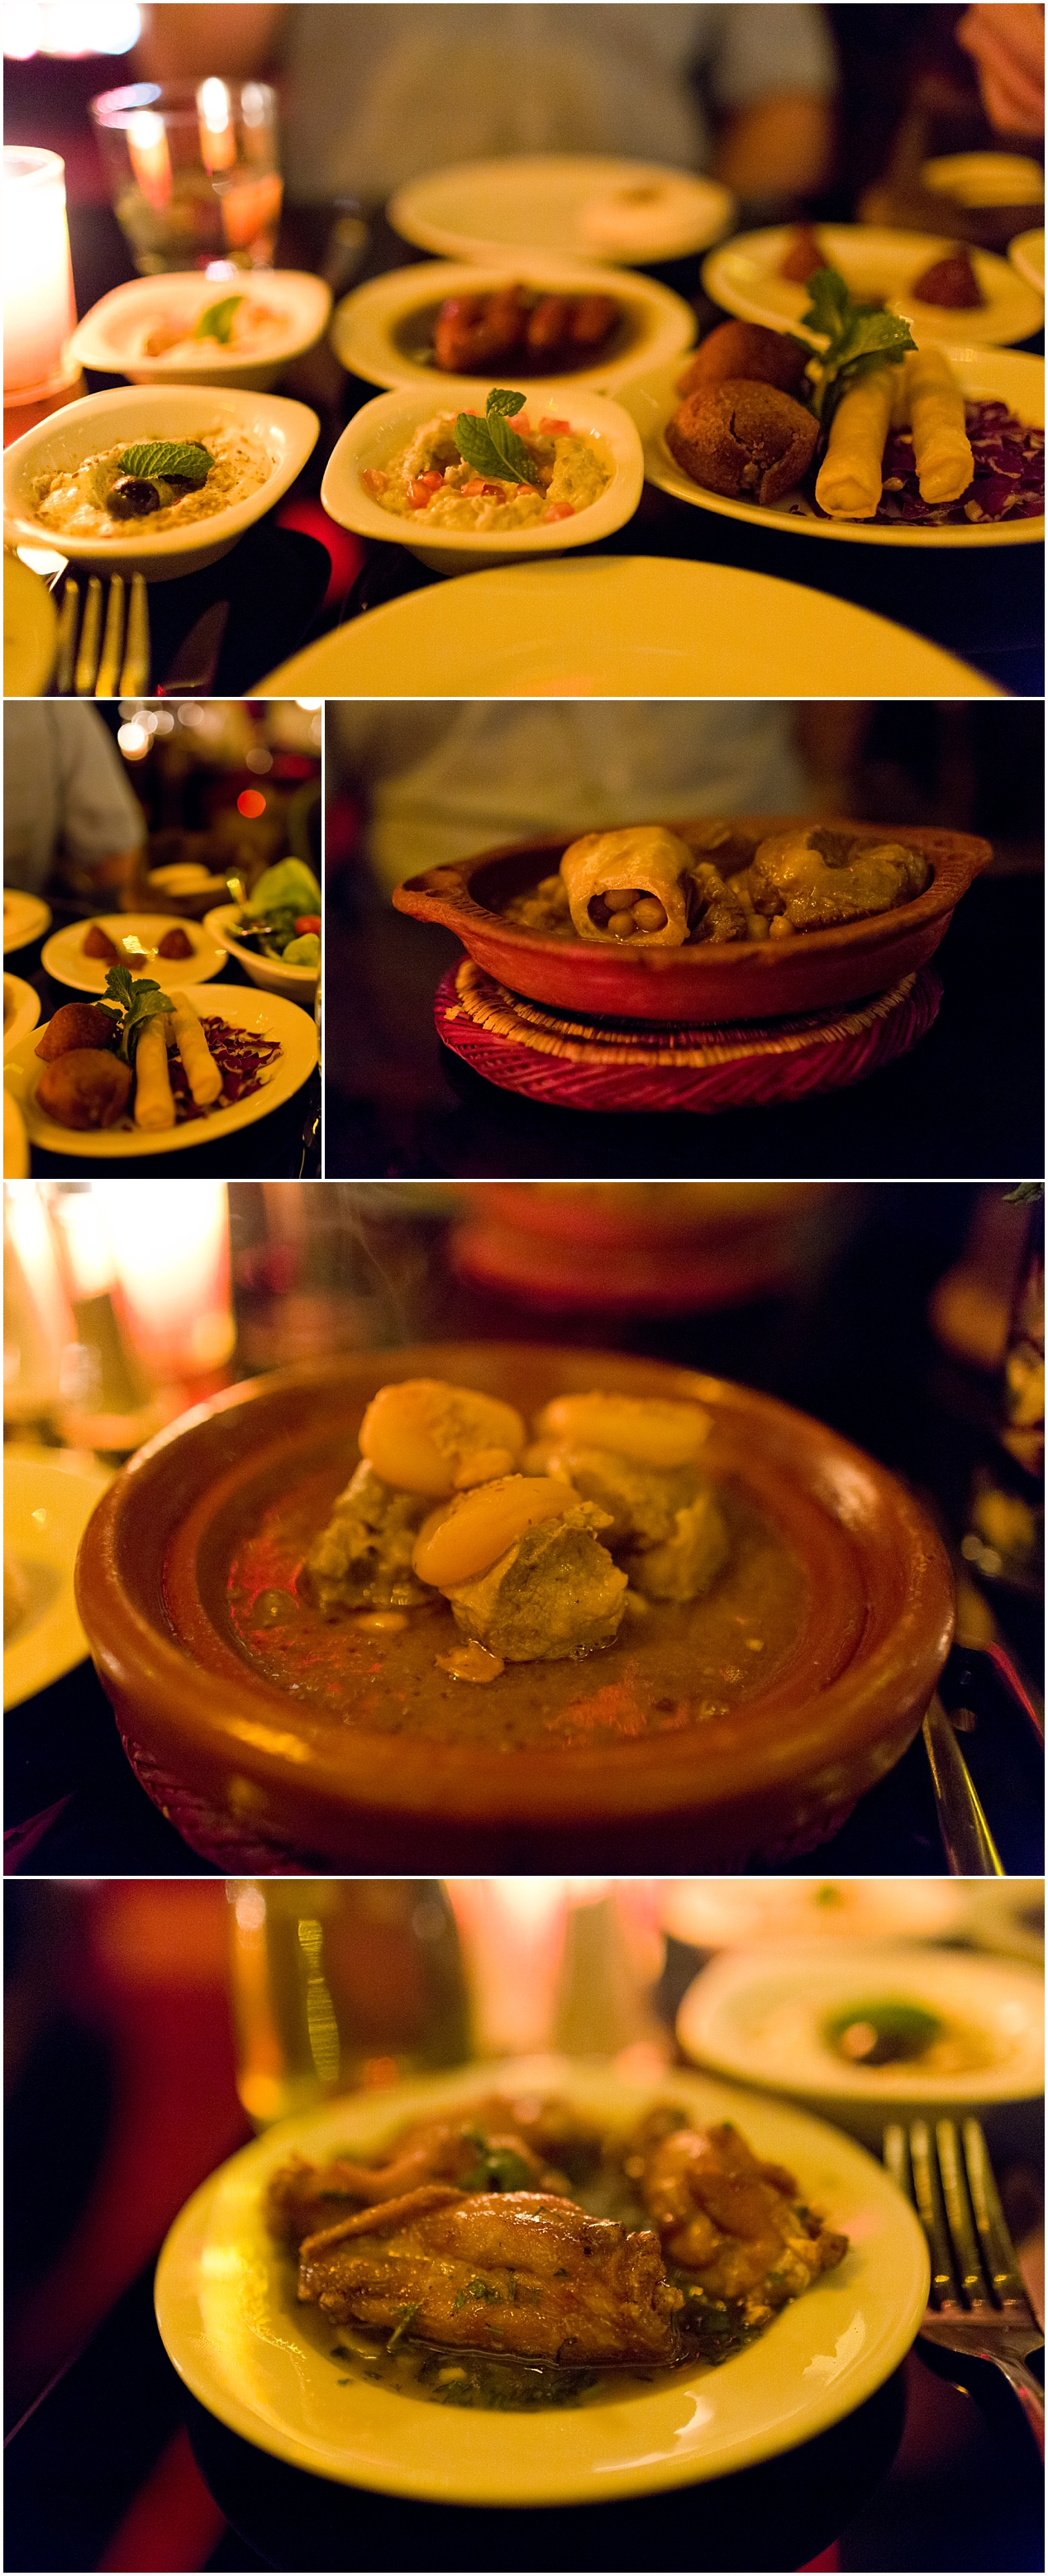 food at Azar restaurant in Marrakech, Morocco - mezze and tagines